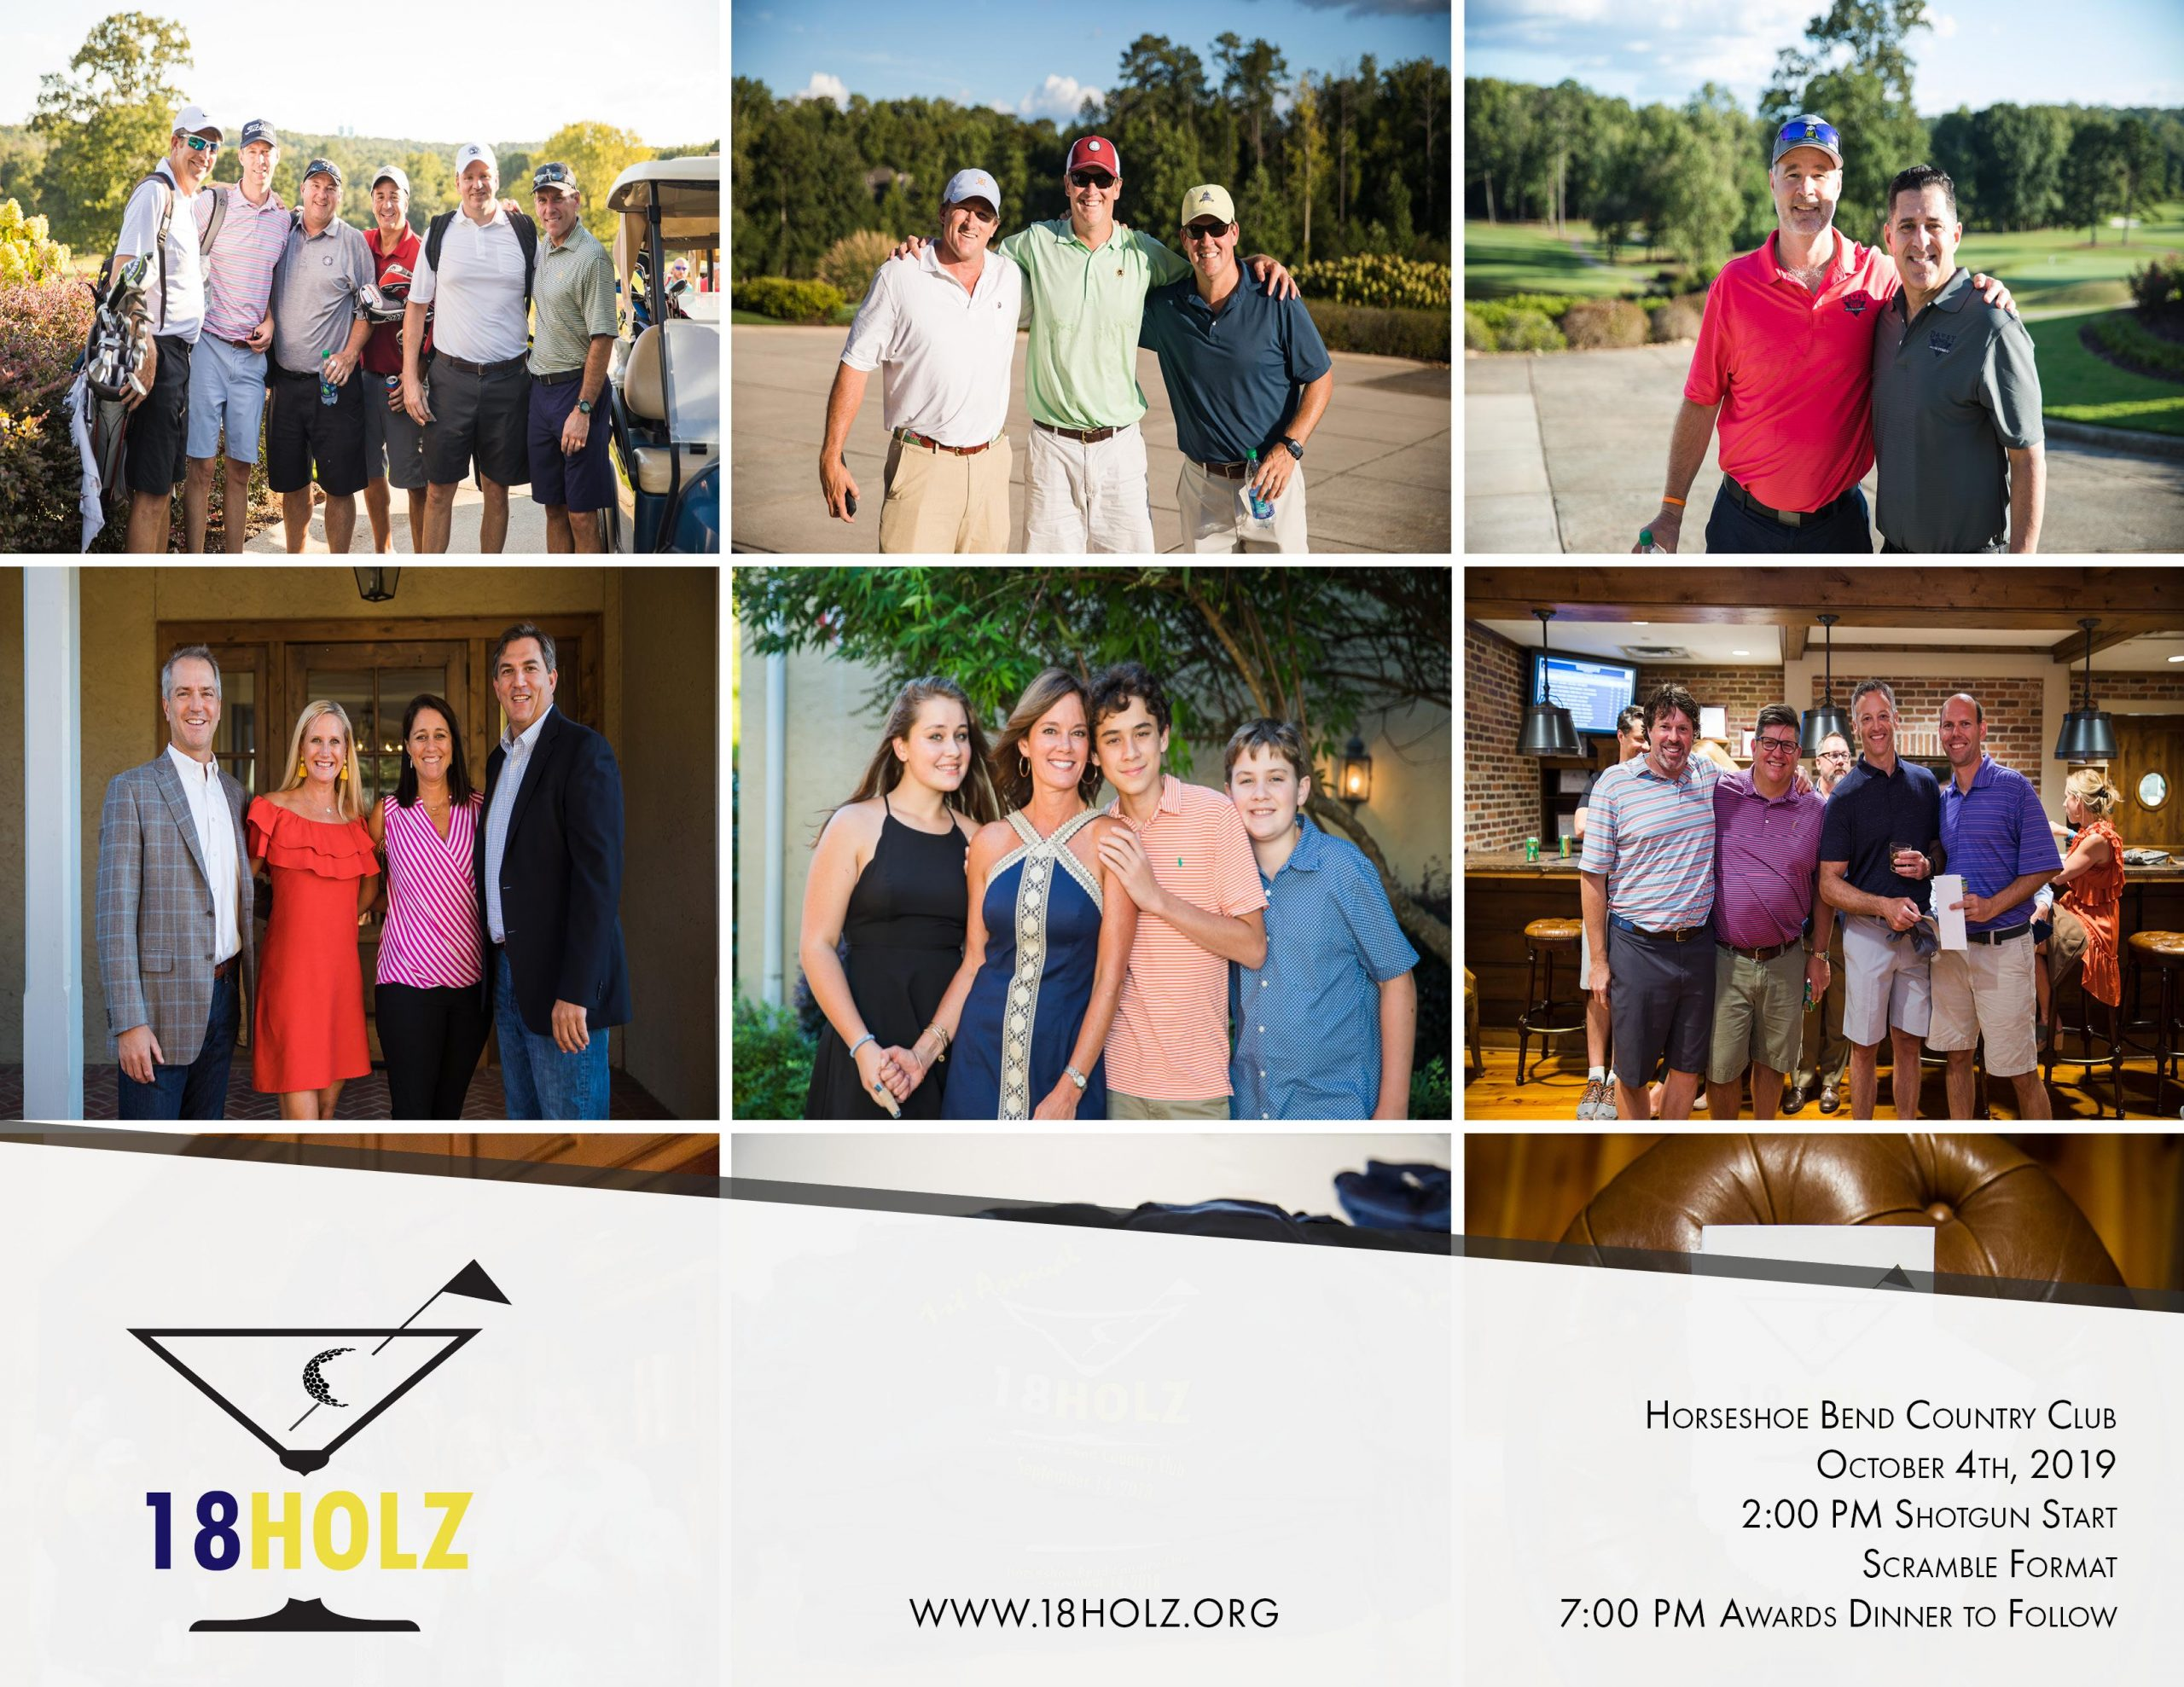 3rd Annual 18 Holz Golf Classic - Eric M. Holzworth Memorial Foundation